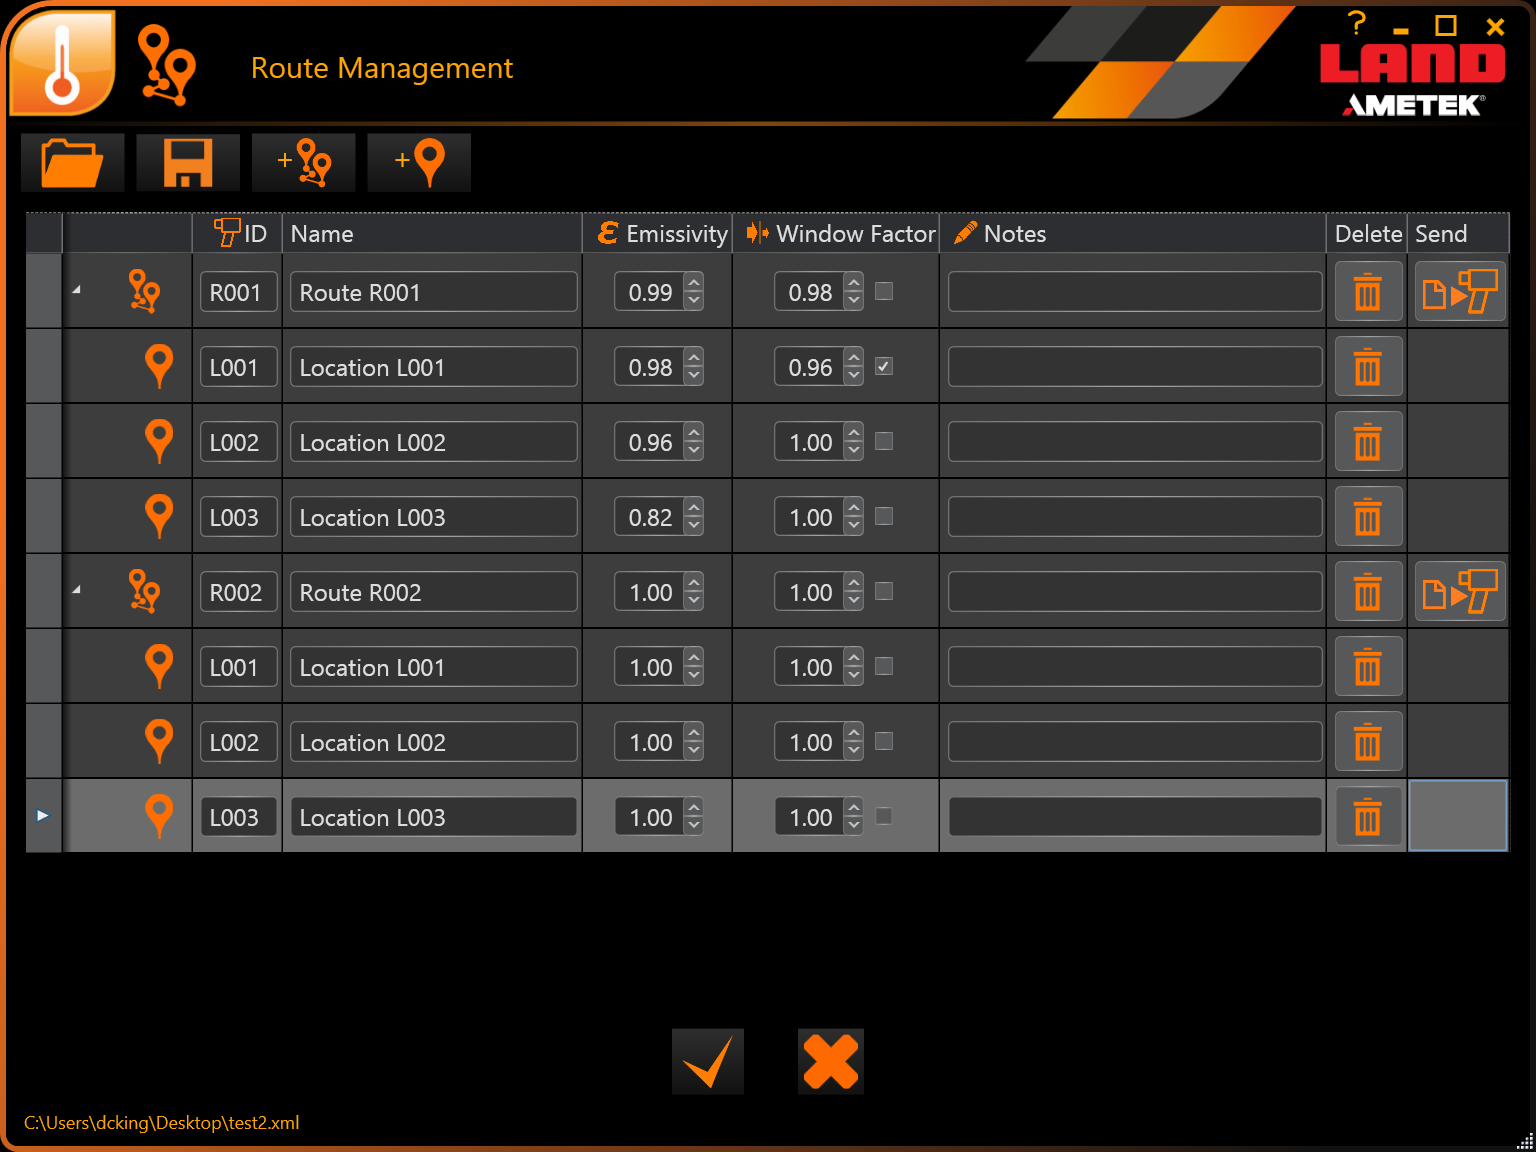 Cyclops Logger PC Route Management